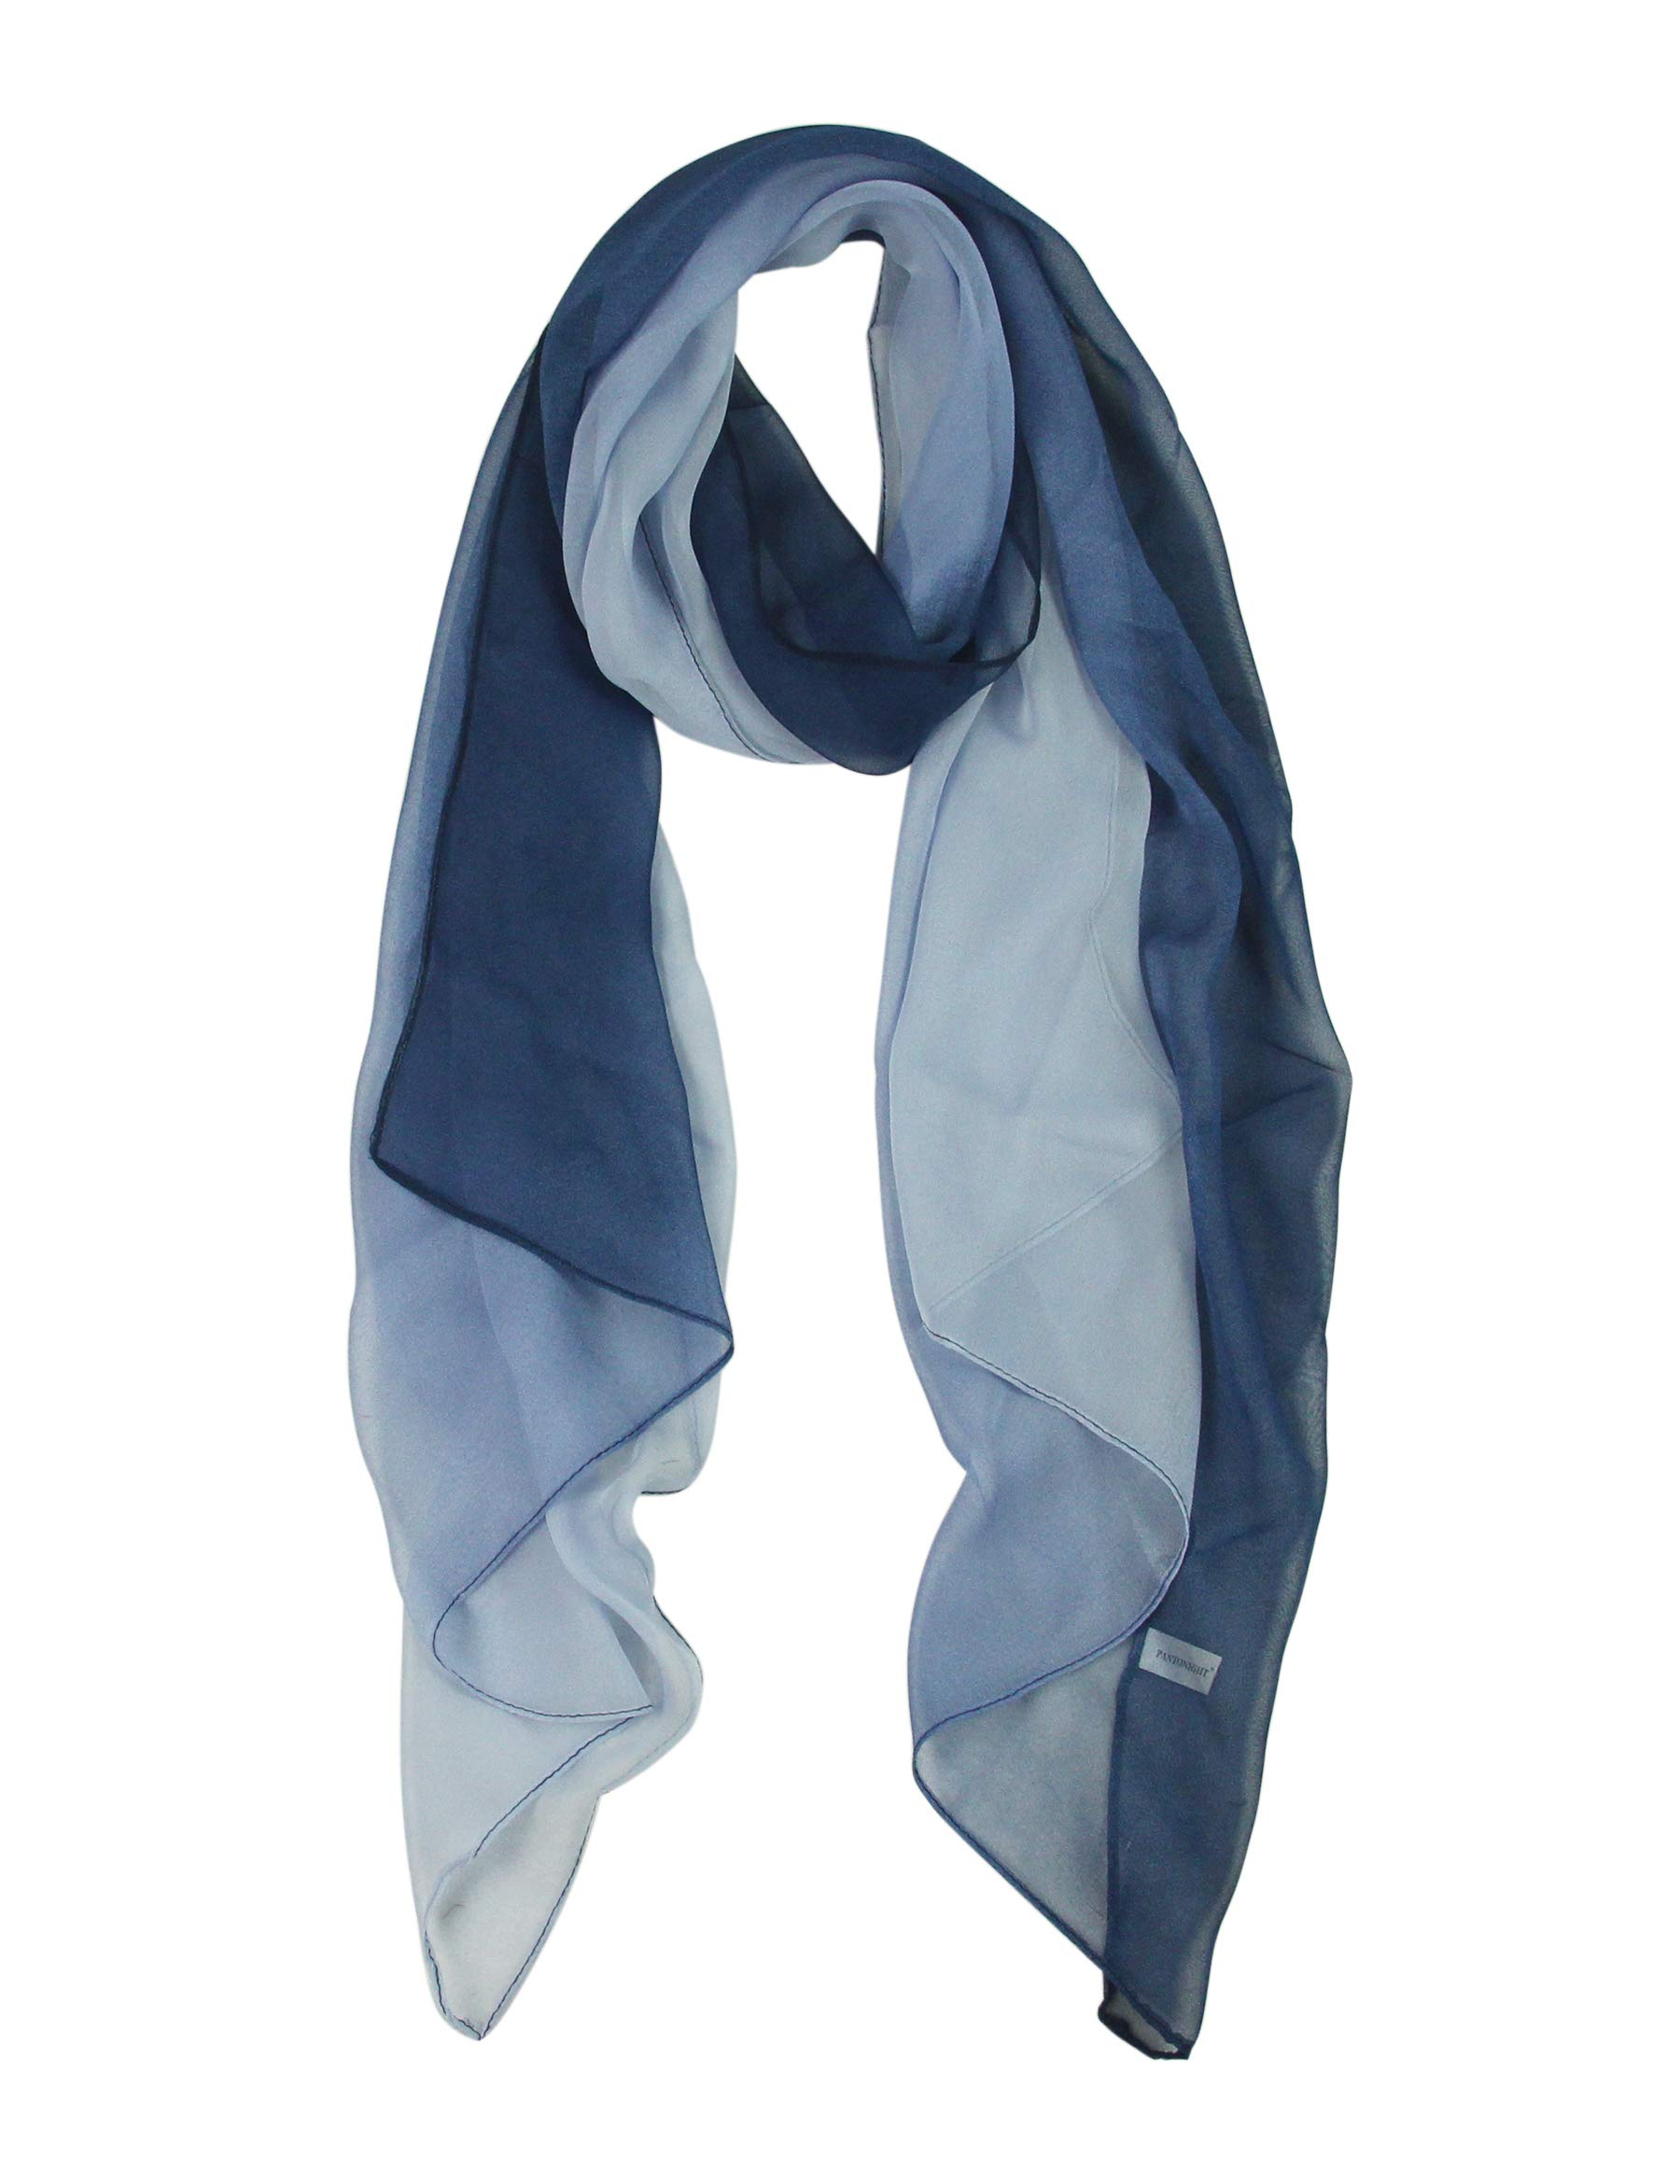 Long Ombre Chiffon Sheer Scarf Gradient - Pantonight Blue Shaded Colors Lightweight Scarf For Womens (Color 087) by PANTONIGHT